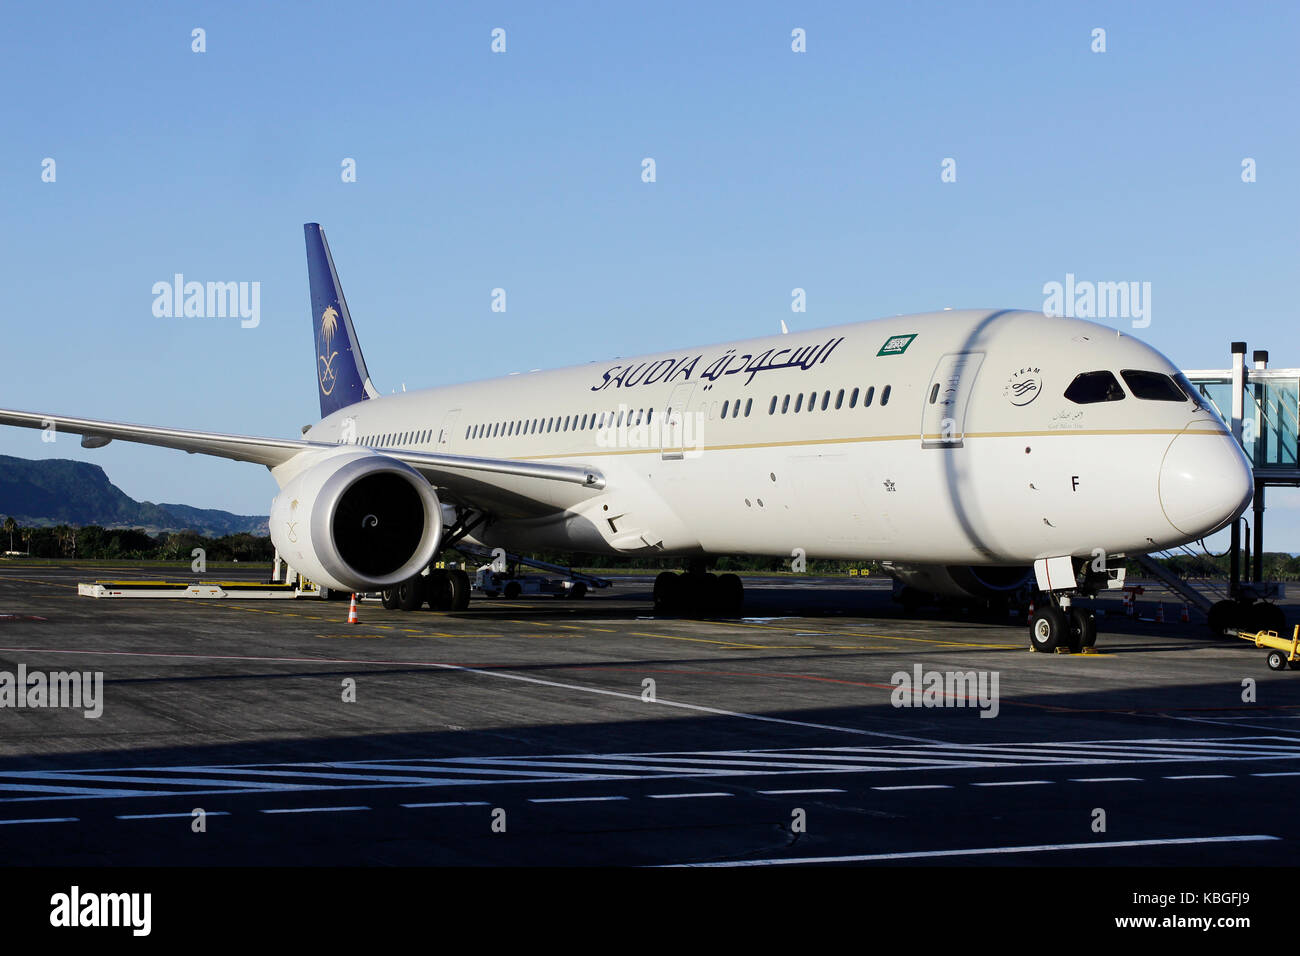 Saudi Arabian Airlines (Saudia) will begin scheduled flights between Riyadh and Jeddah to Mauritius from Sept. 14 - Stock Image